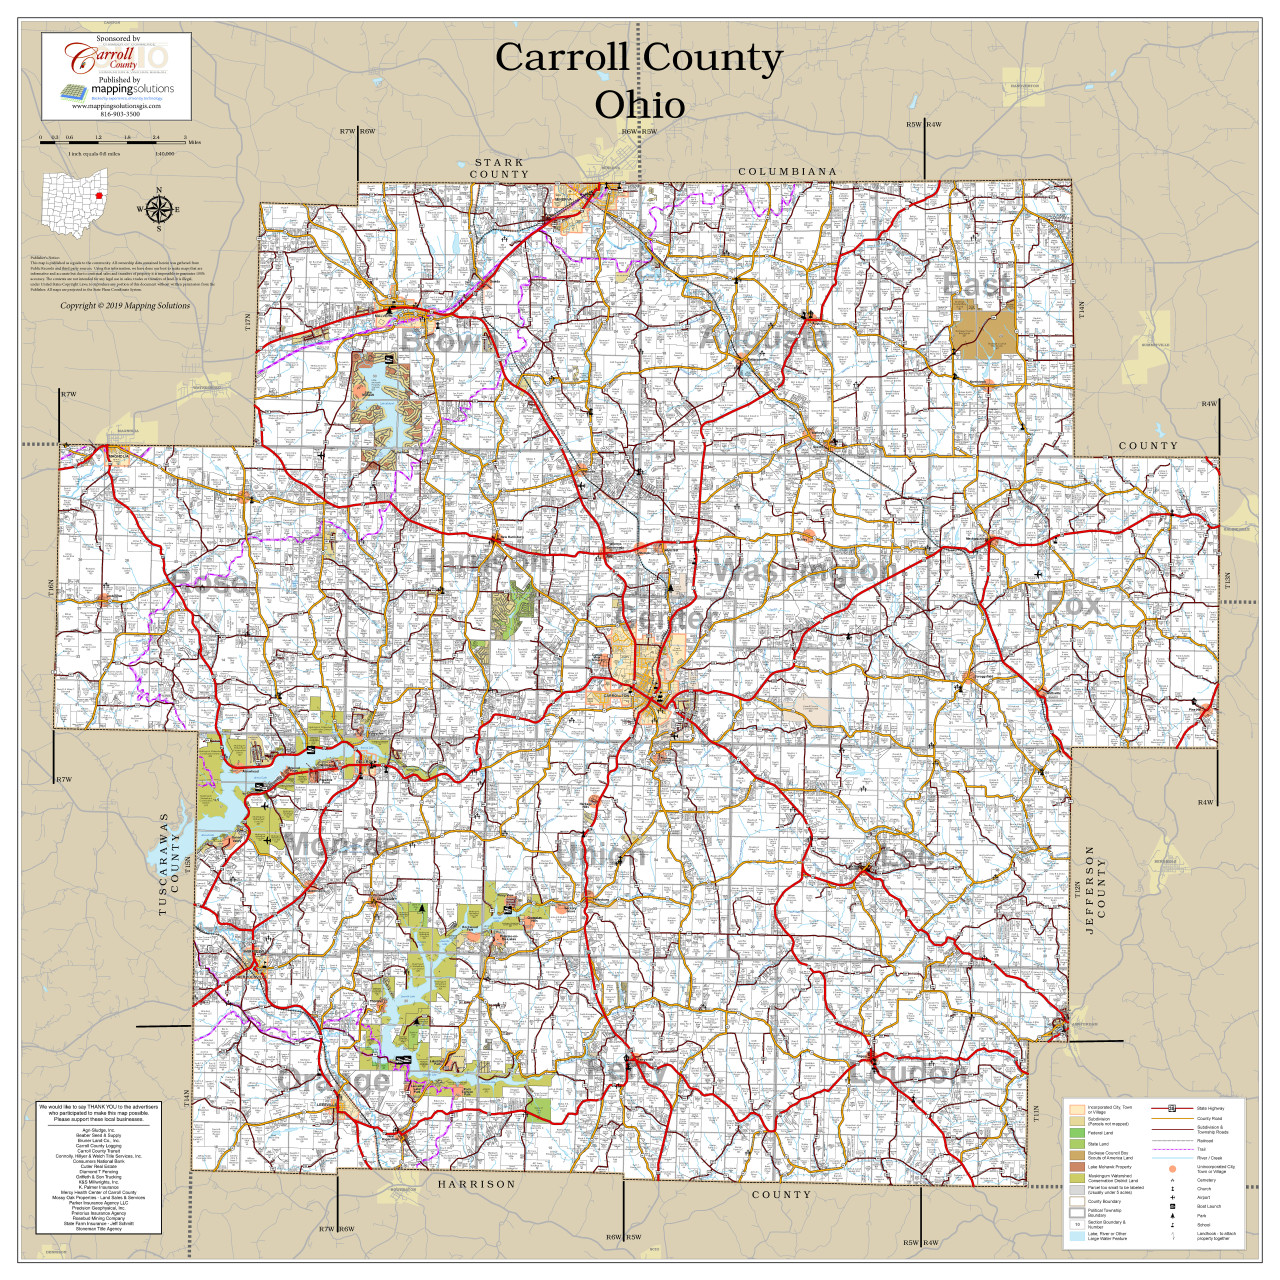 Carroll County Ohio 2019 Wall Map on jefferson county, mercer county, fairfield county, brown township ohio map, stark ohio map, conneaut ohio map, magnolia ohio map, carrollton ohio map, wayne county, washington court ohio map, delaware county, columbiana county, grayson county road map, north olmsted ohio map, city of columbus ohio map, jackson county, henry ohio map, lake county, barry county missouri map, west chester ohio map, monroe county, mad river township ohio map, stark county, washington county, montgomery county, ohio ohio map, clark county, tuscarawas county, new franklin ohio map, united states ohio map, franklin county, miami township ohio map, harrison county, marion county, prince george's county cities map, washington county arkansas road map, fairfield township ohio zoning map, mahoning county,